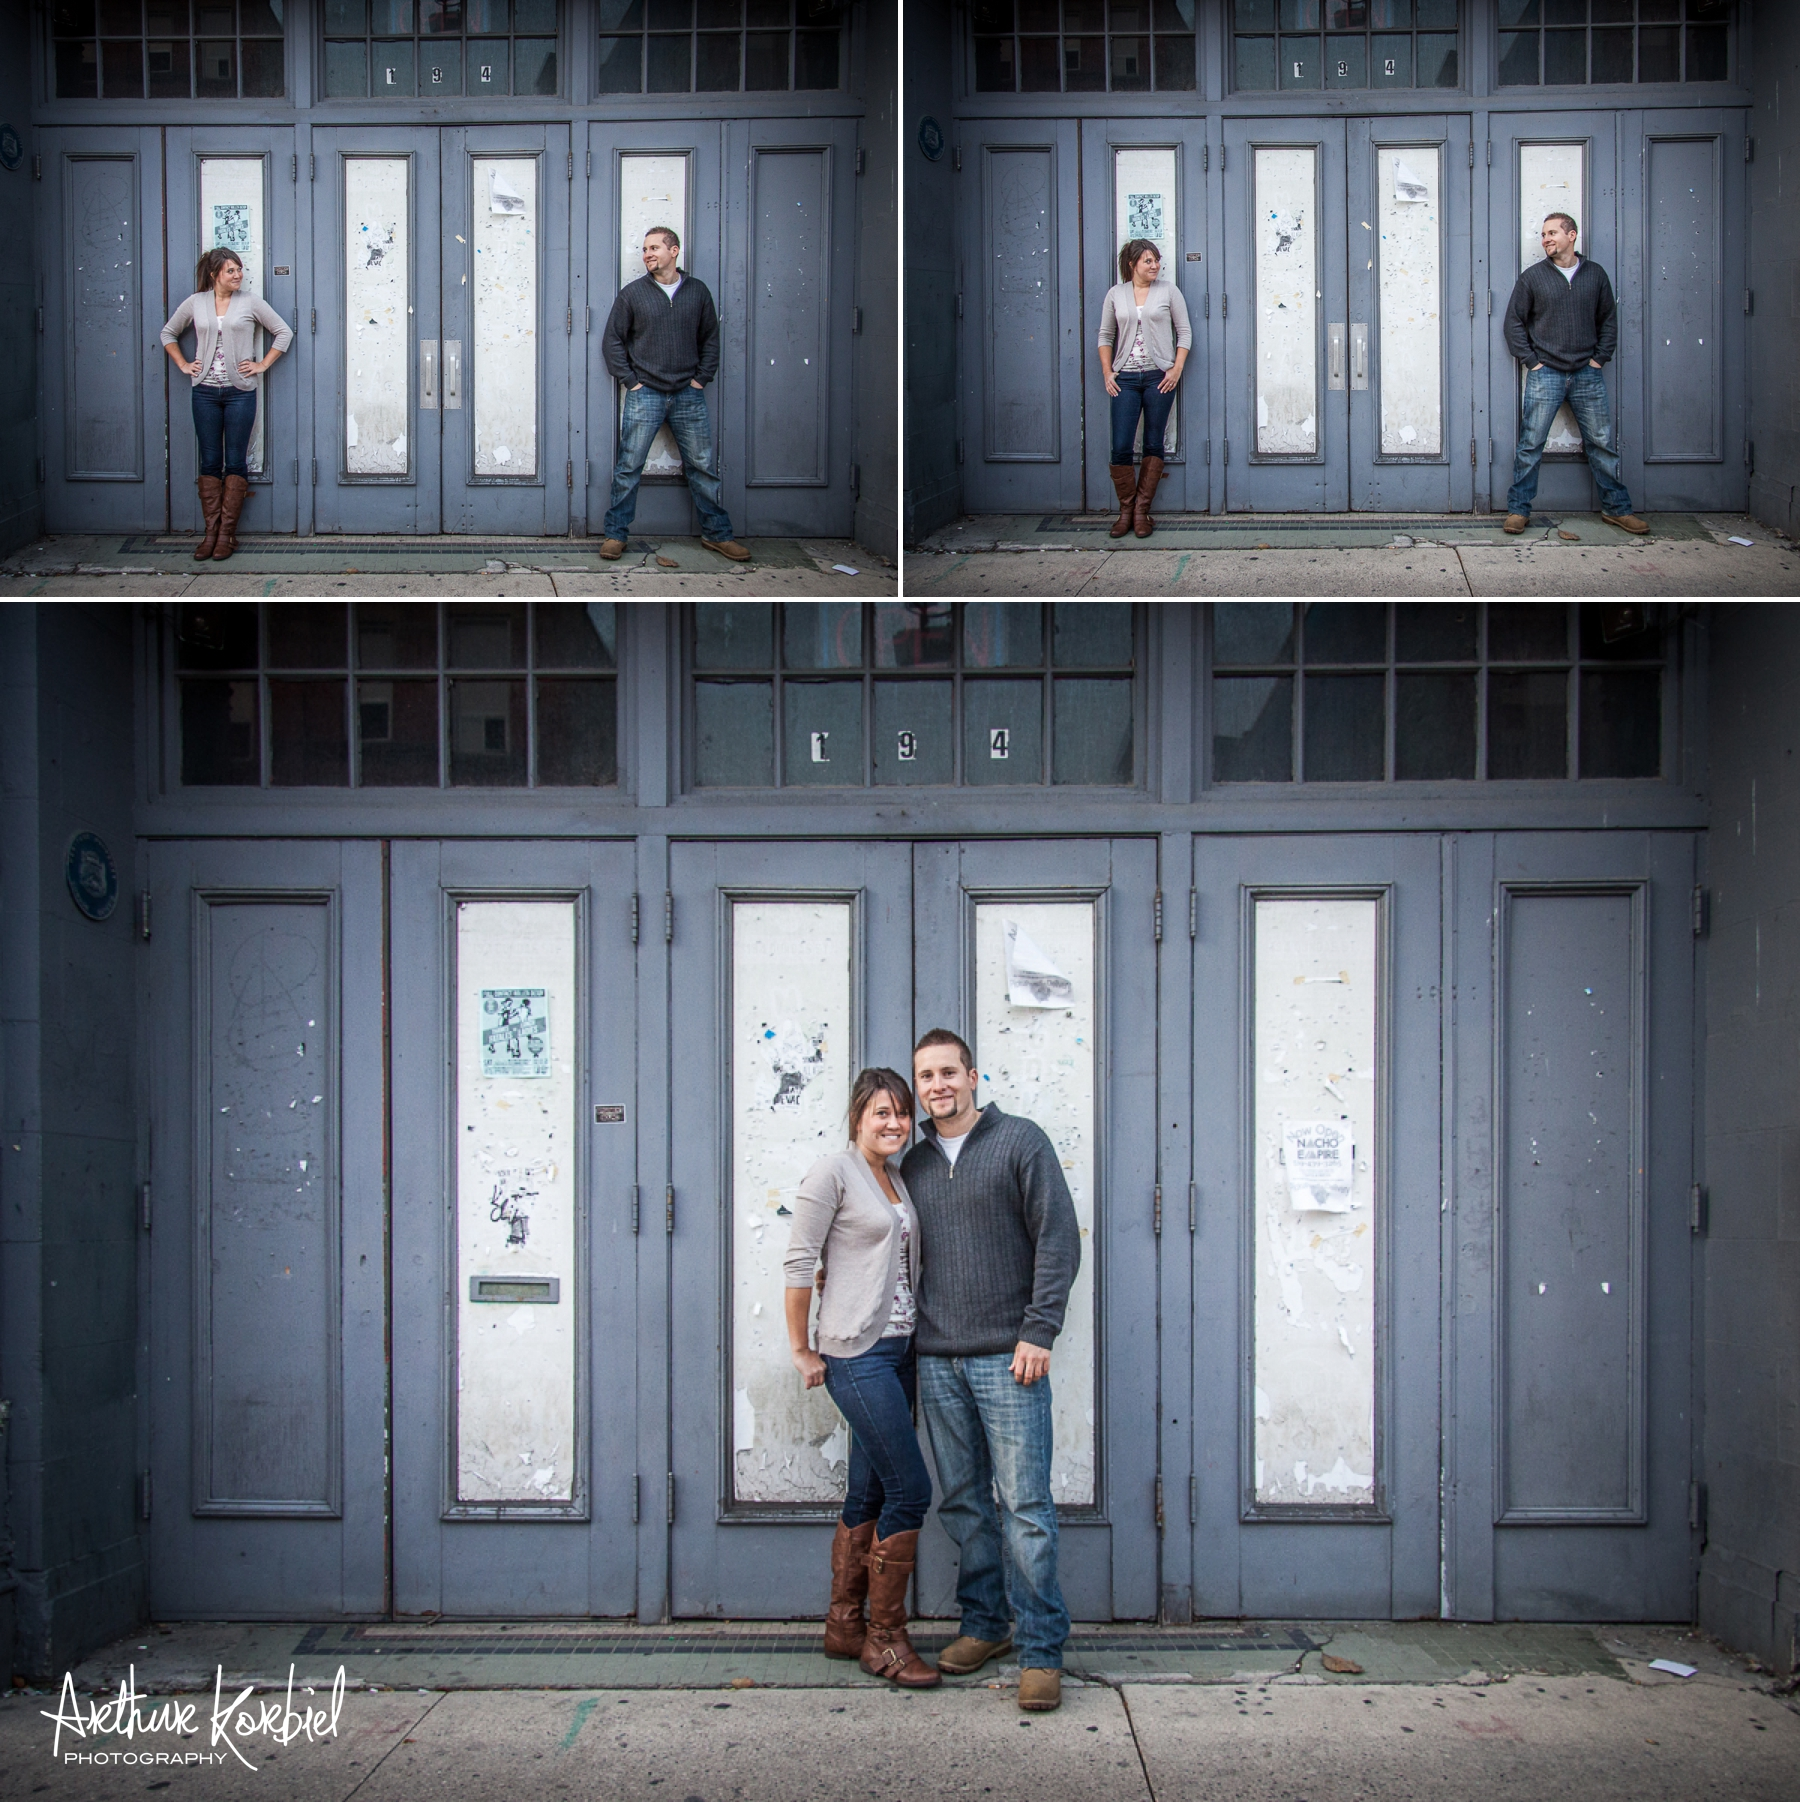 Arthur Korbiel Photography - London Engagement Photographer - Katie & Mike_004.jpg